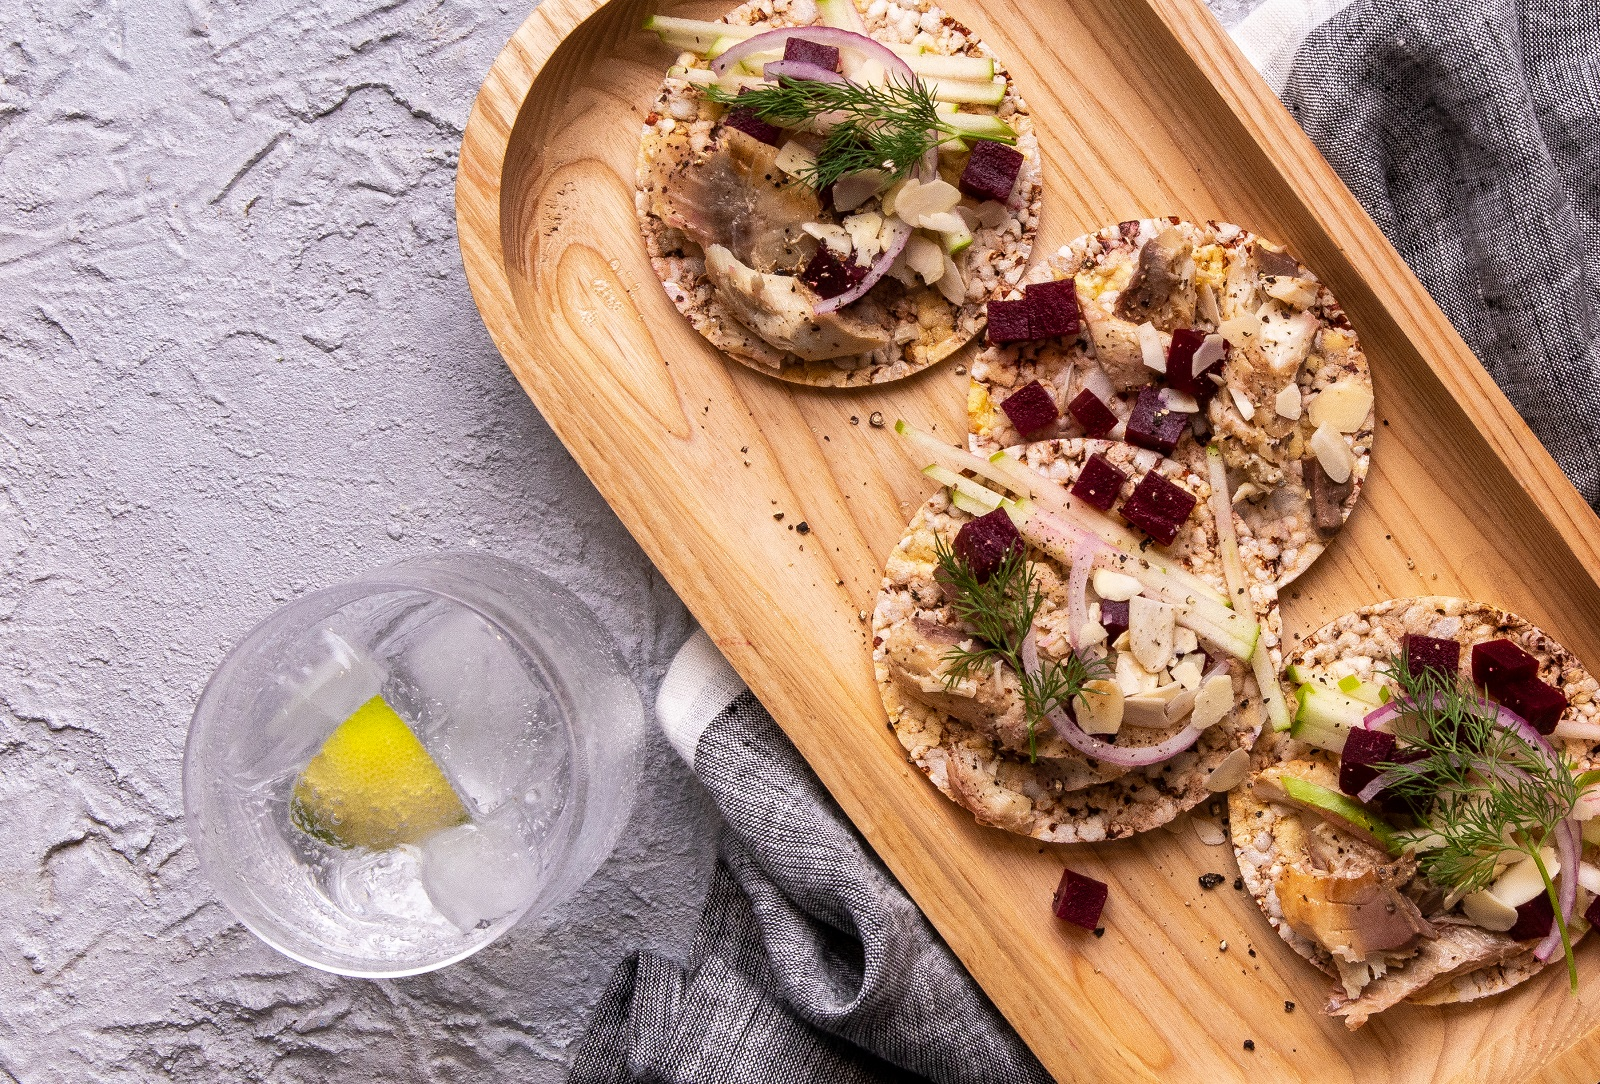 Smoked Mackerel & Beetroot Salad on Corn Thins slices for lunch